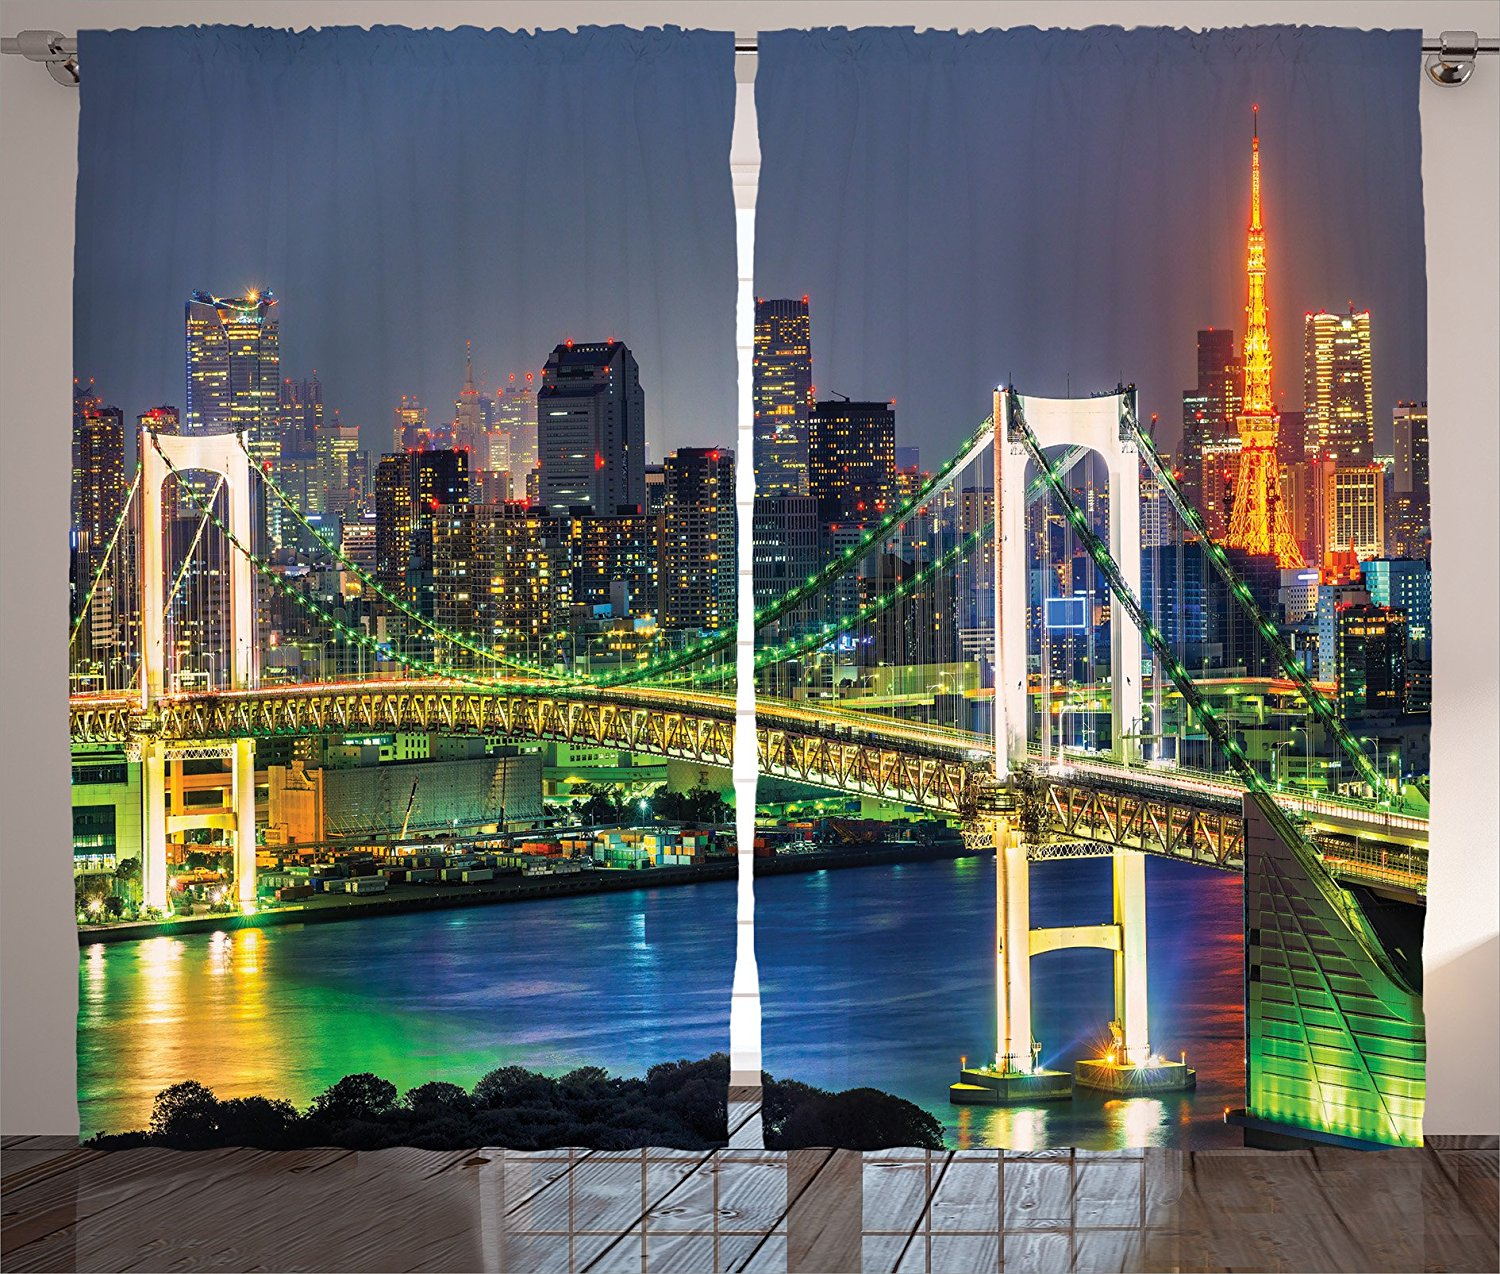 Apartment Decor Curtains by Ambesonne, Tokyo Skyline with Tokyo Tower and Rainbow Bridge Tokyo Japan Night Scenery View, Living Room Bedroom Decor, 2 Panel Set, 108W X 84L Inches, Green Navy